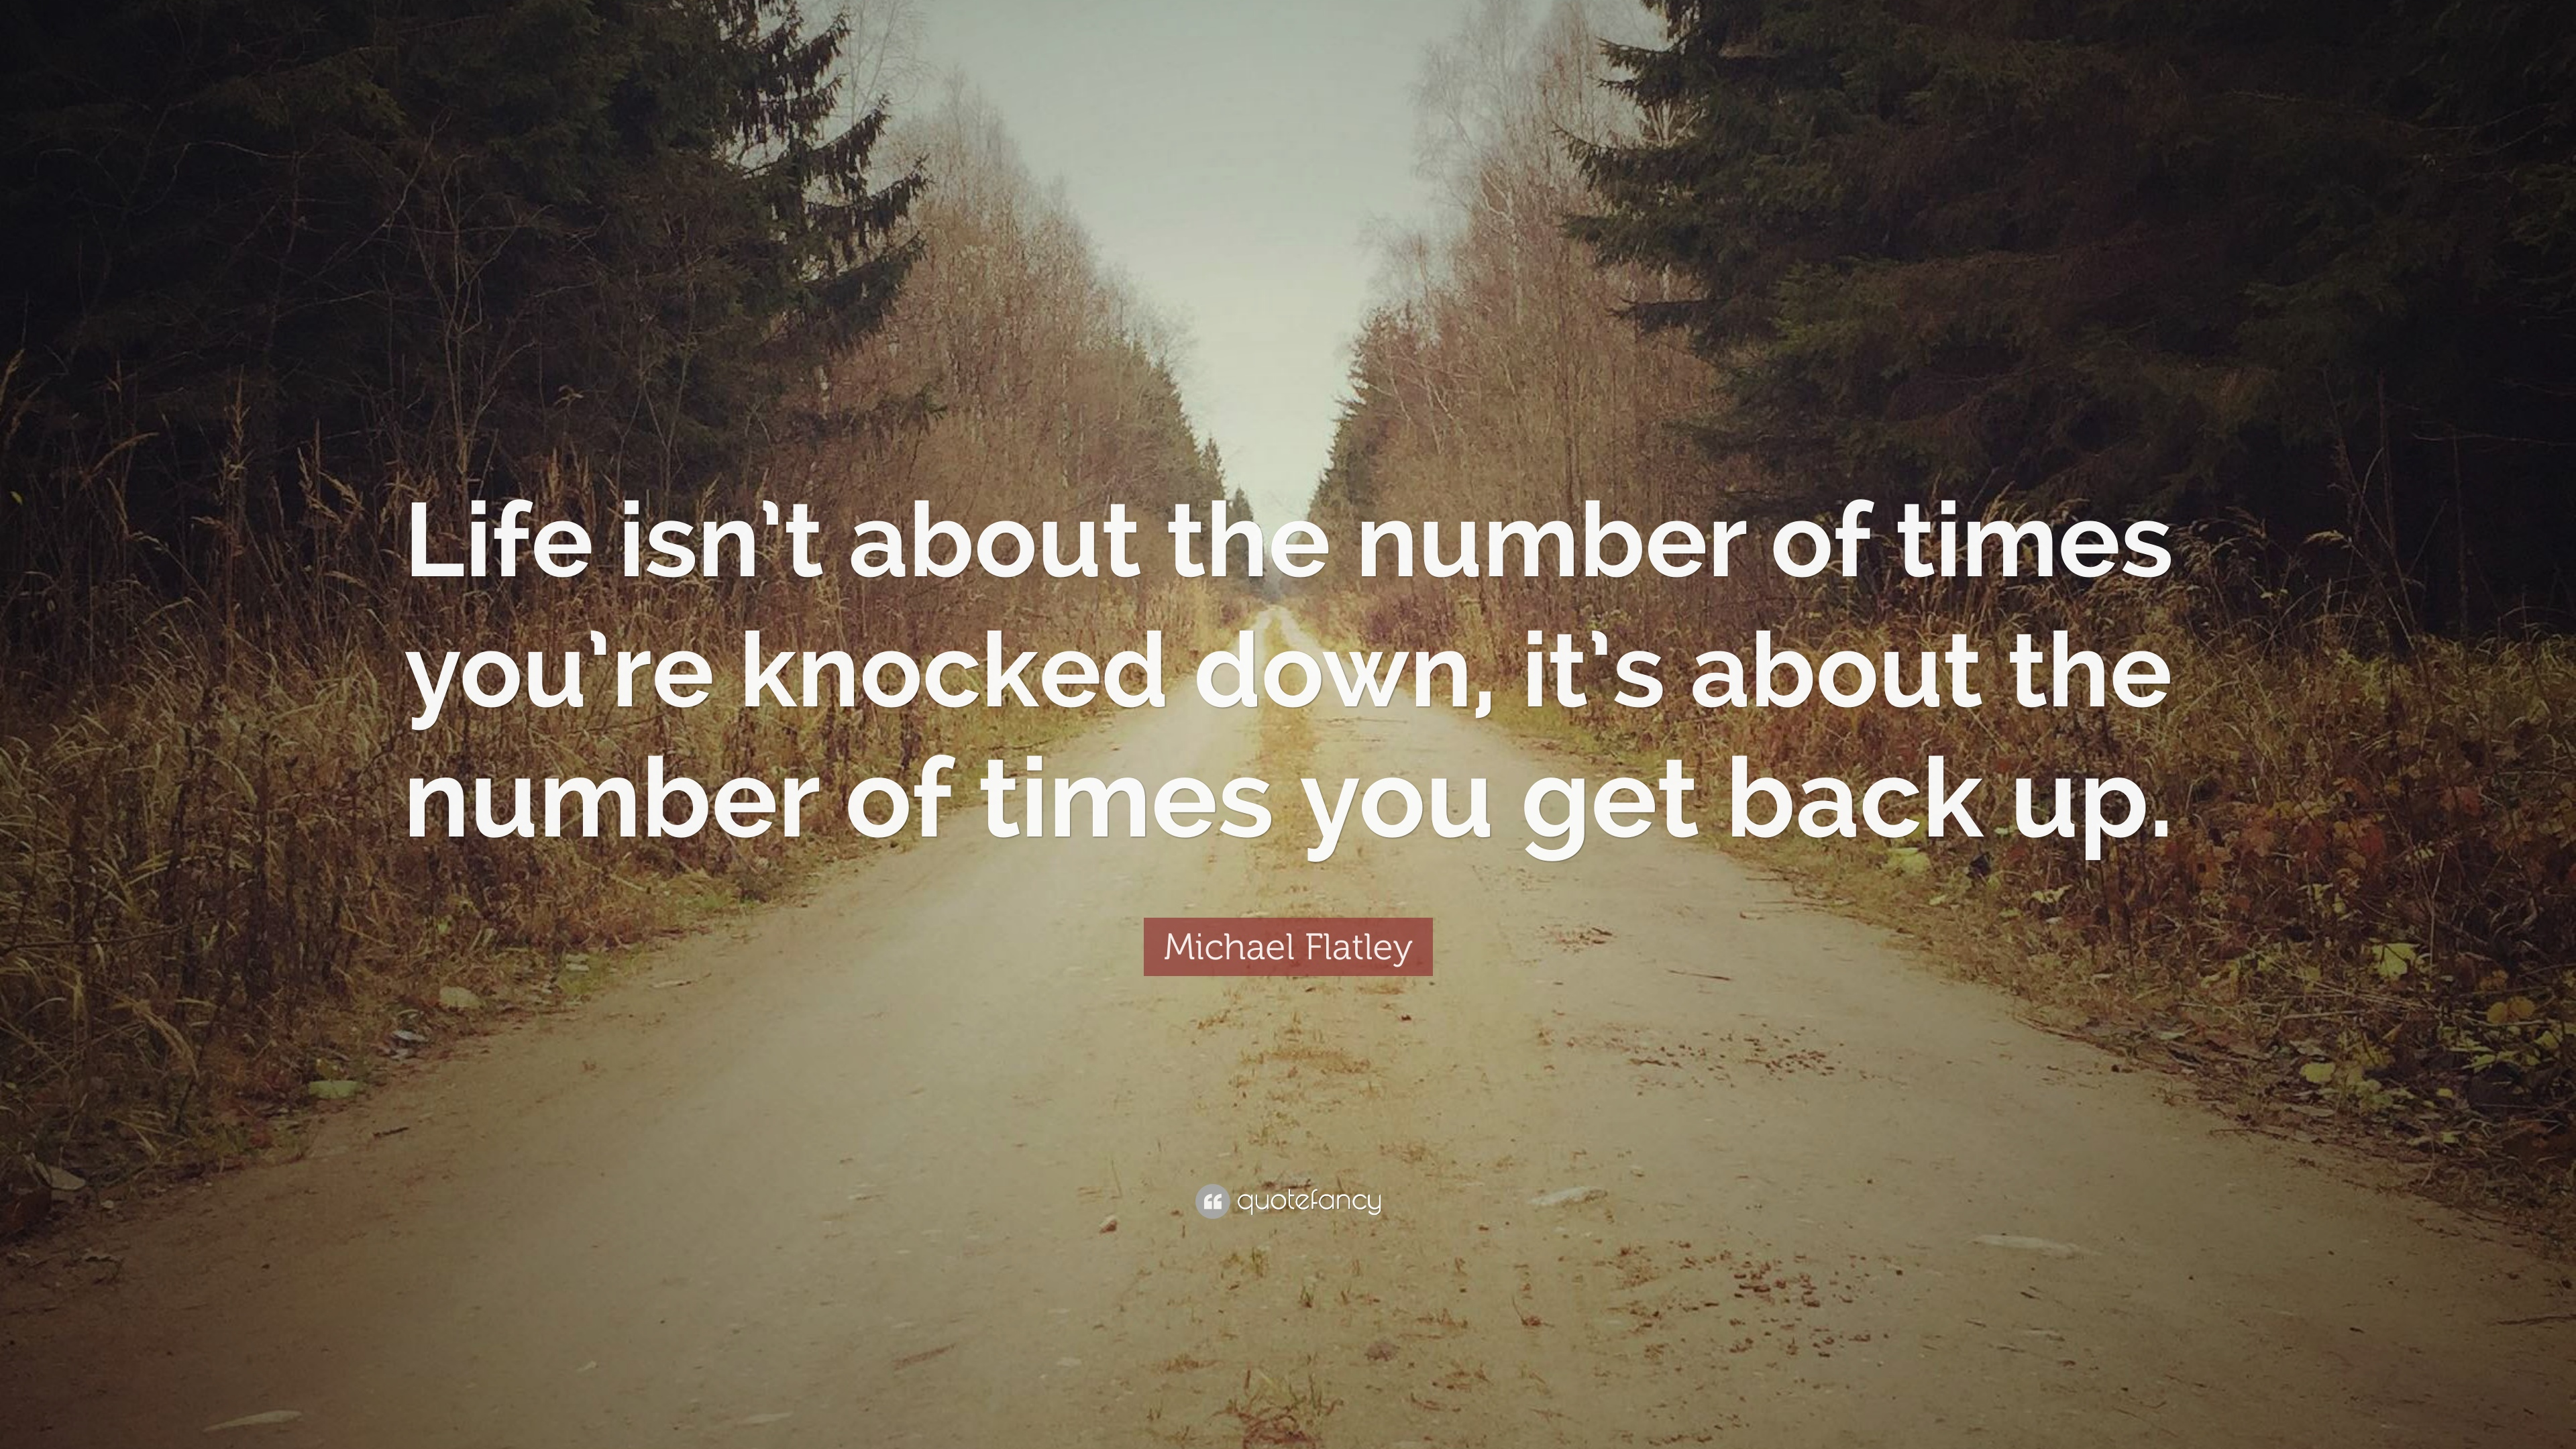 Michael Flatley Quote Life Isnt About The Number Of Times Youre